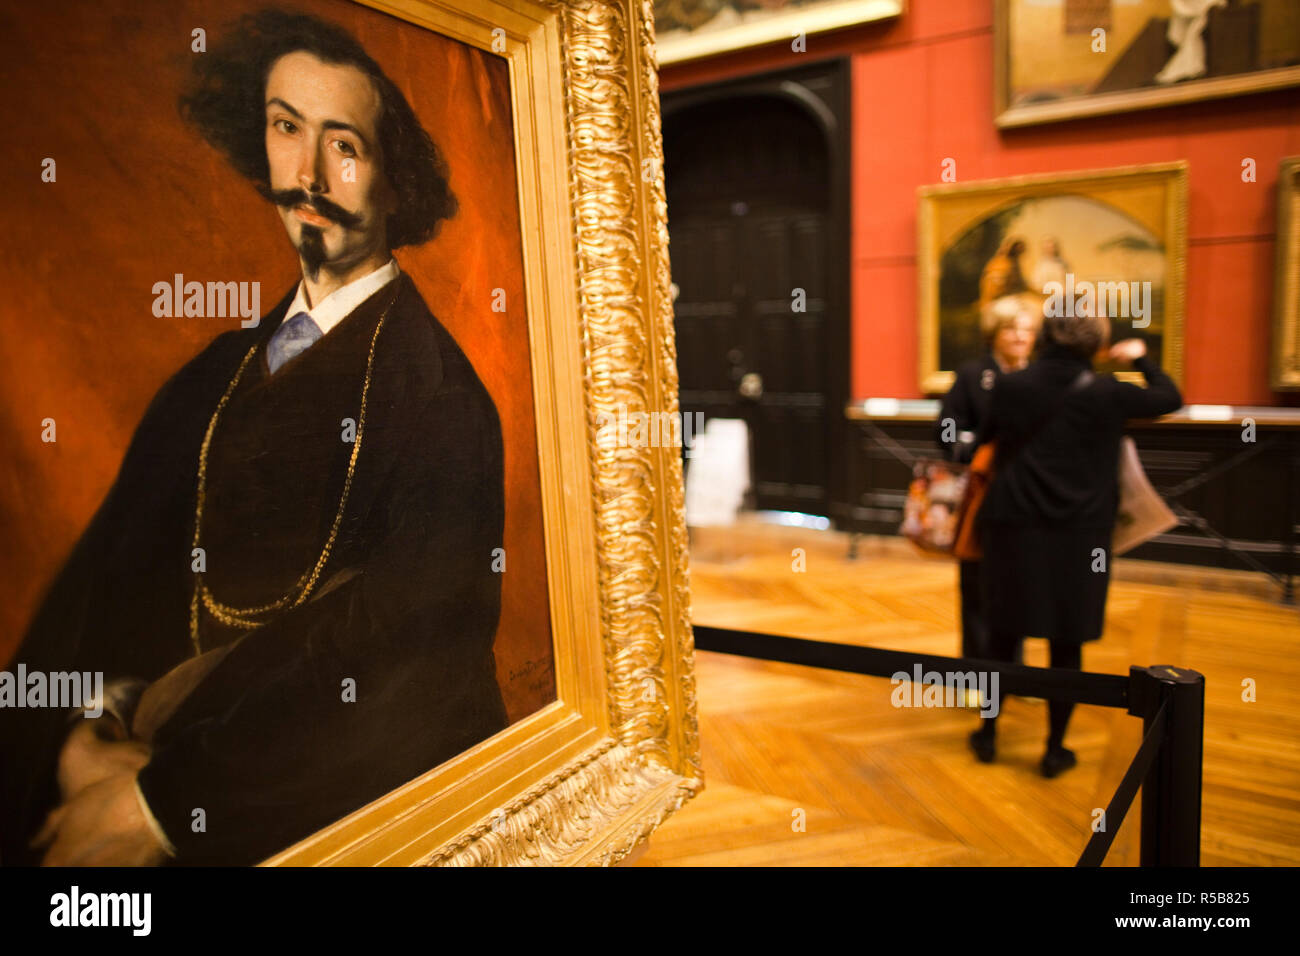 France, Midi-Pyrenees Region, Haute-Garonne Department, Toulouse, Musee des Augustins museum, Portrait of Spanish Painter Moreno, 1866 by Charles Durand - Stock Image